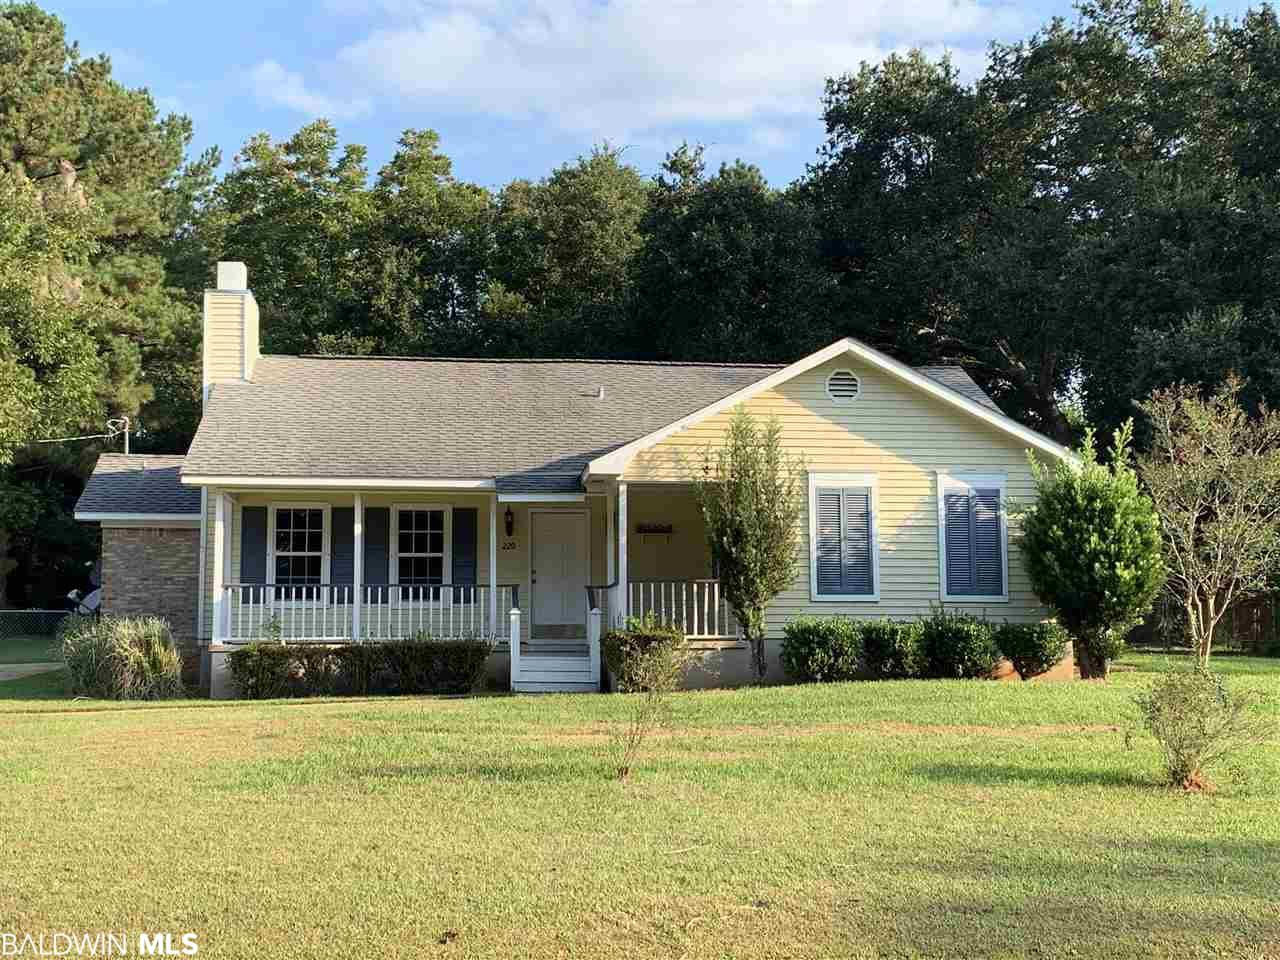 A craftsman style home in an established subdivision that is truly one to love. Plenty of yard to park a boat or an RV. A Heated and cooled 300 sq. ft.sunroom for plenty of your favorite plants.( This square footage is not included in the overall 1450 listed) Quiet and close to restaurants, shopping and the interstate. Rooms are large and there is even an in-law suite for loved ones and guests. Enjoy front-porch, southern style living. The house includes another lot situated directly behind the property, for even more privacy.